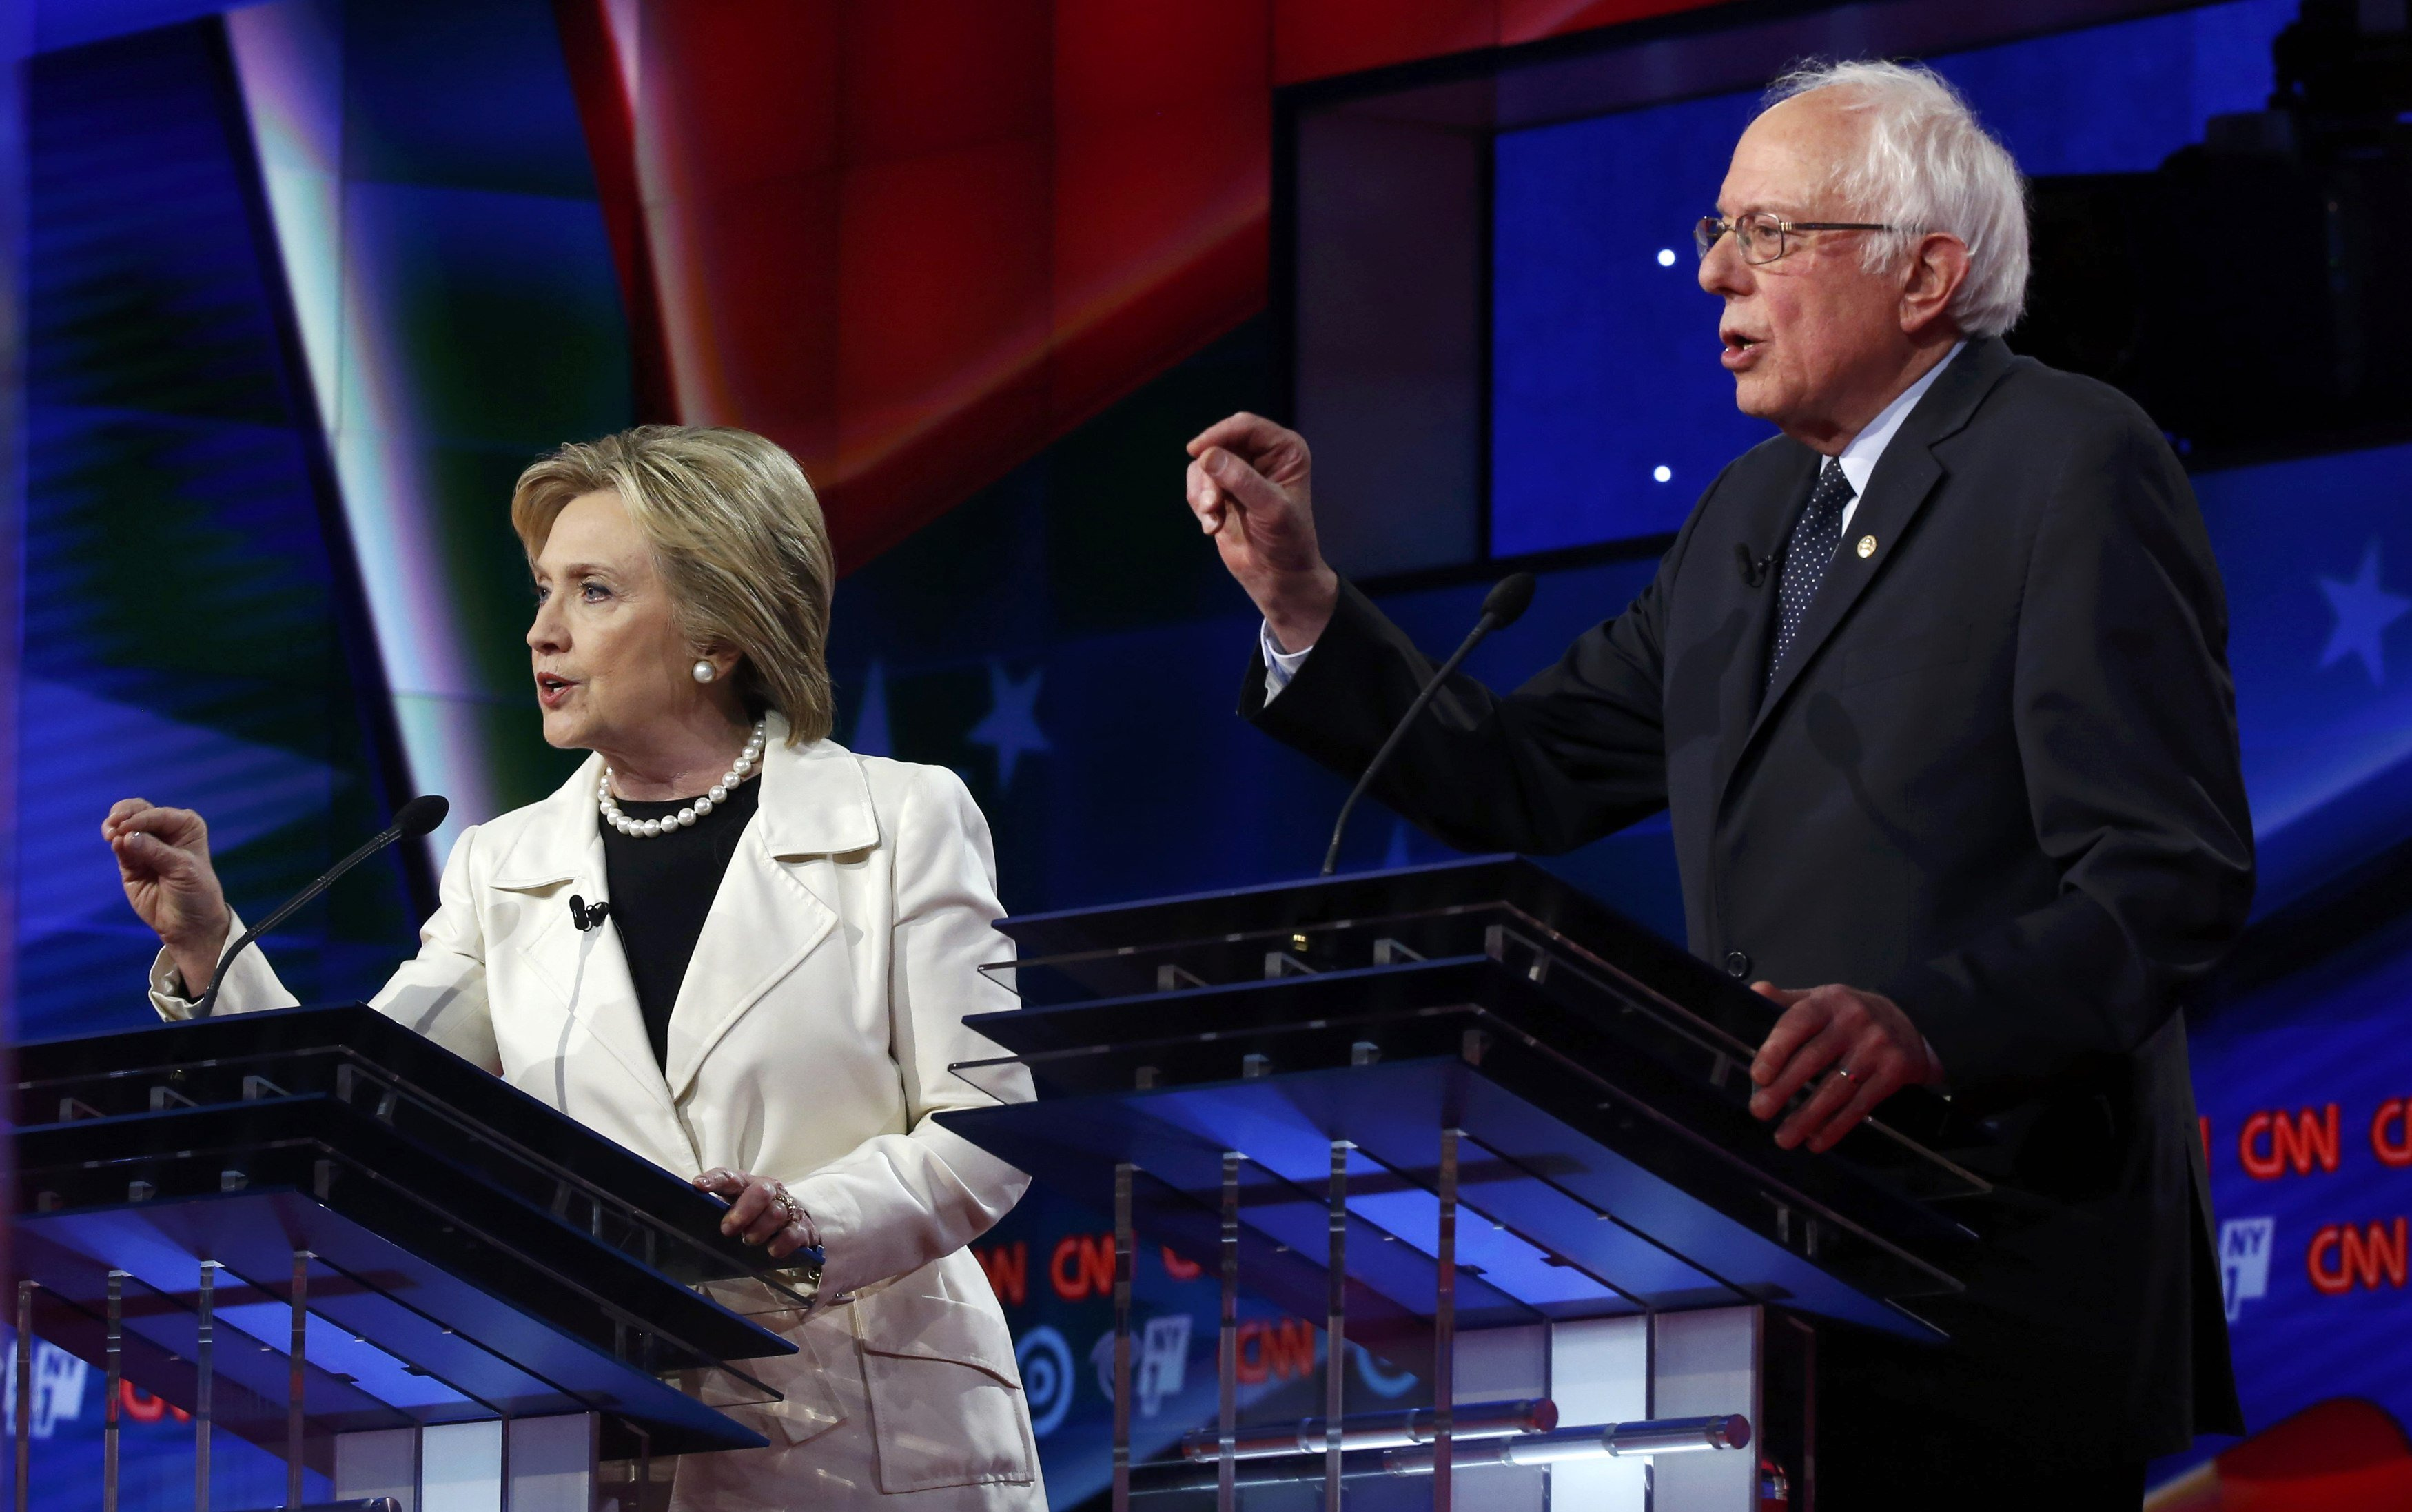 Democratic presidential candidates Hillary Clinton and Senator Bernie Sanders speak simultaneously during a Democratic debate hosted by CNN and New York One at the Brooklyn Navy Yard in New York April 14, 2016.